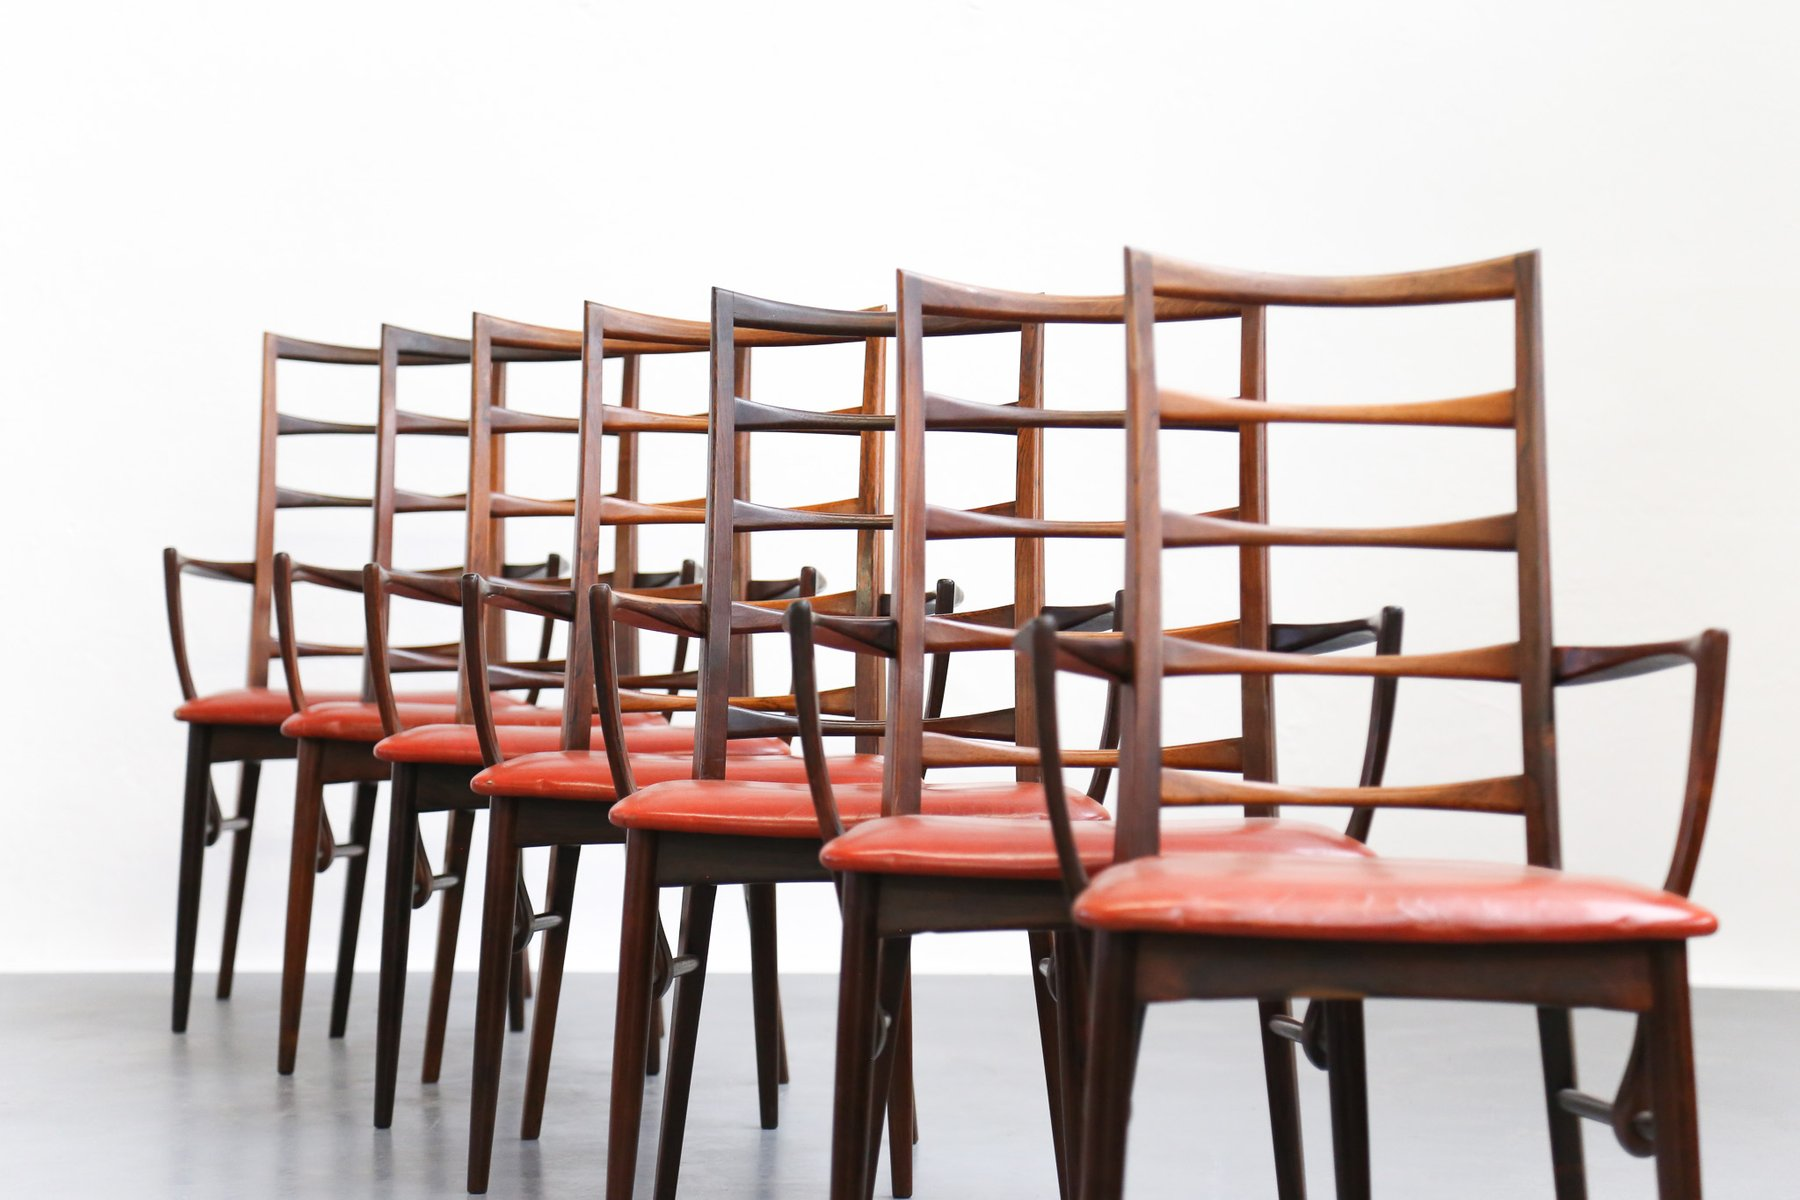 Vintage Danish Dining Chairs by Niels Koefoed Set of 7 for sale